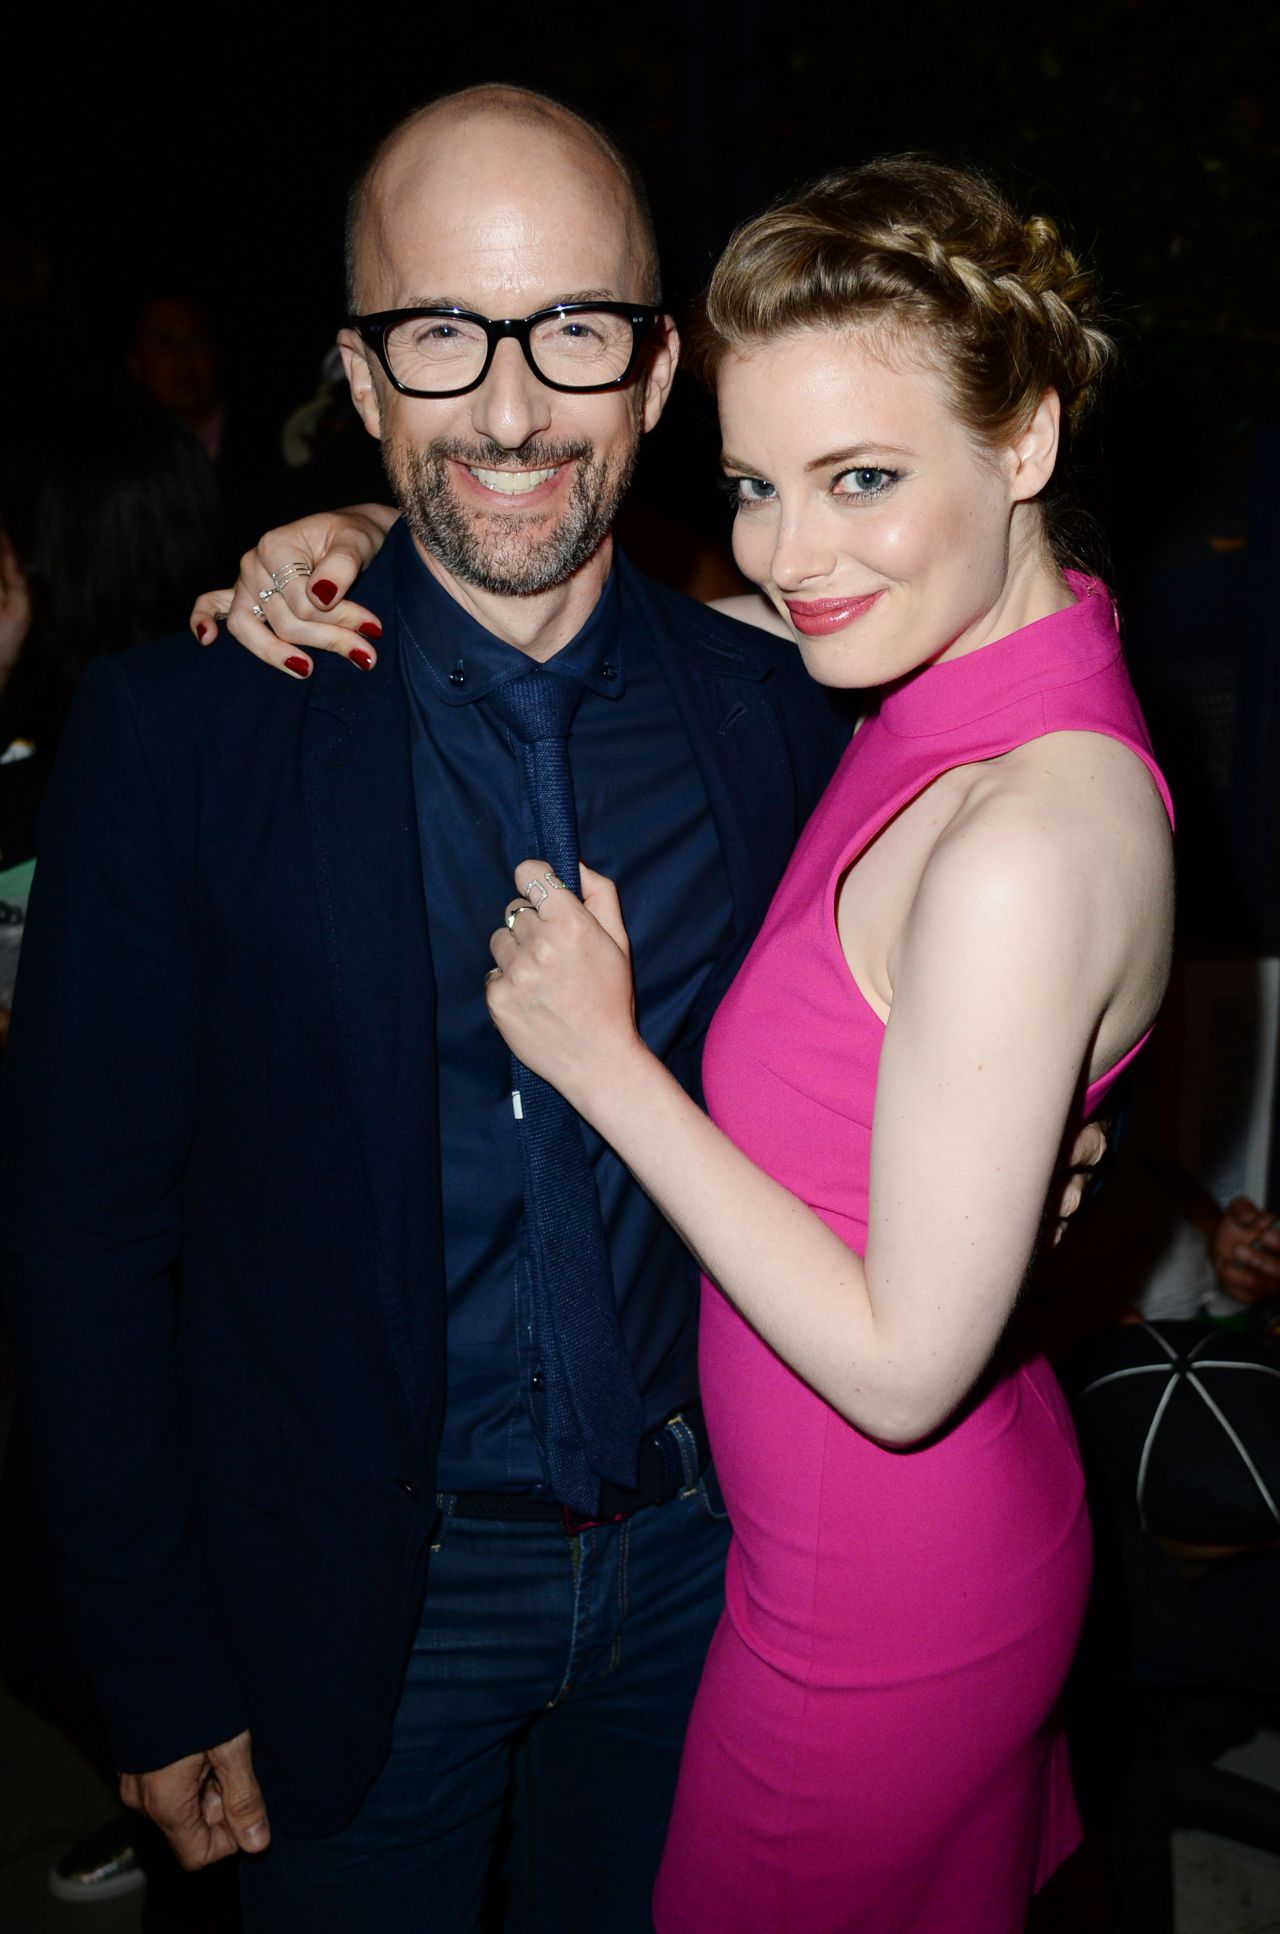 Gillian Jacobs - mtvU Fandom Awards 2014 at San Diego International Comic-Con in San Diego